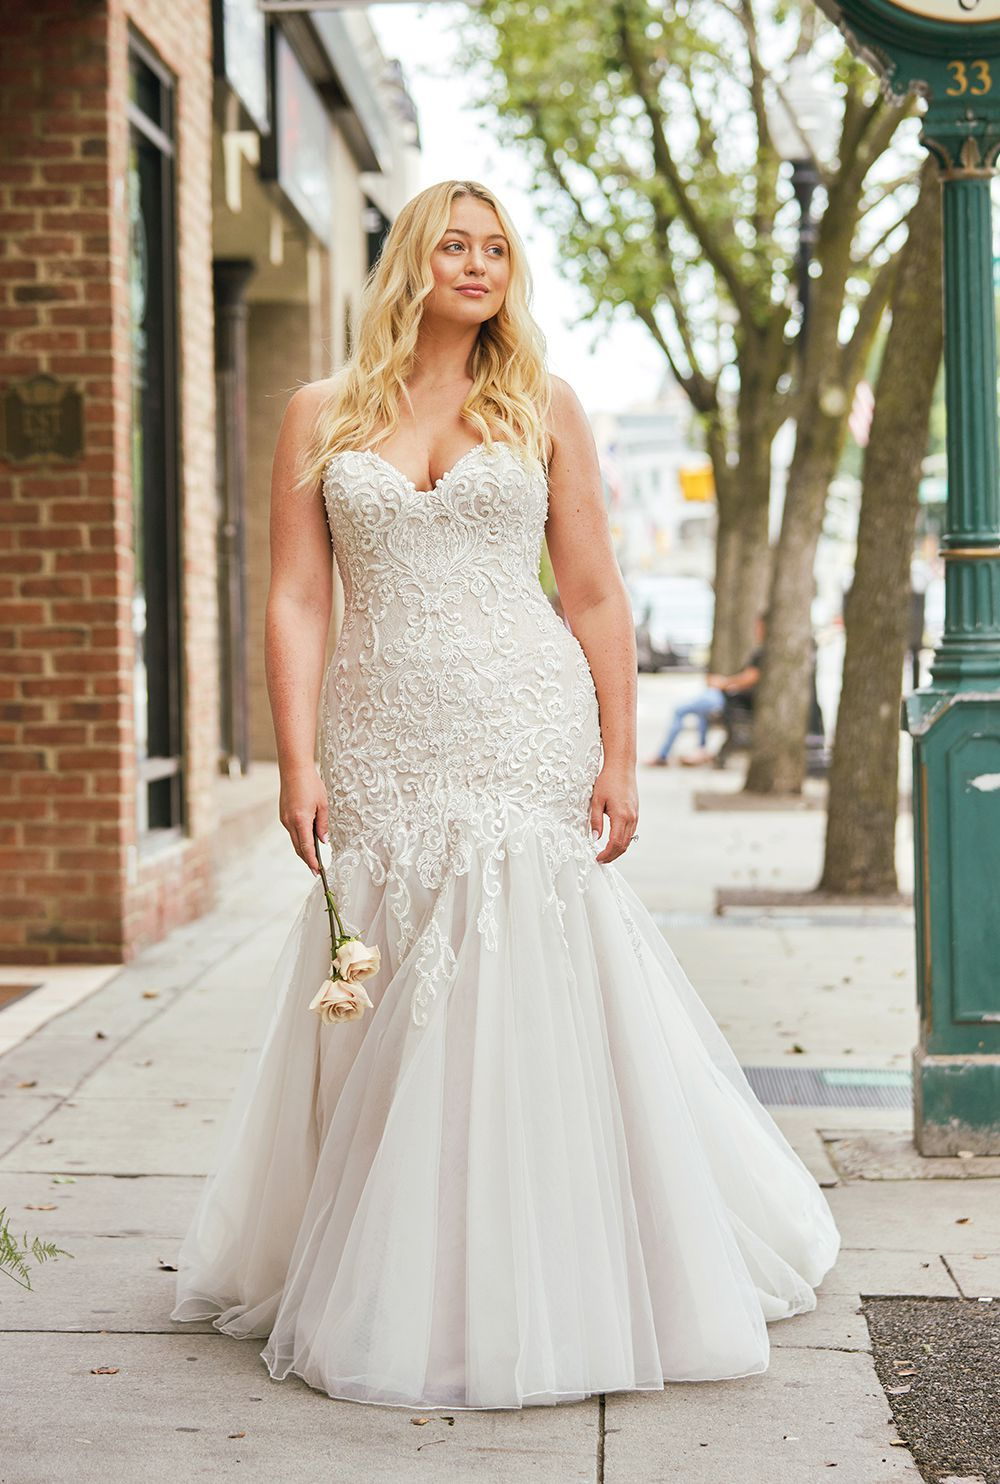 Dropped Waist Trumpet Gown in 2019 White bridal dresses